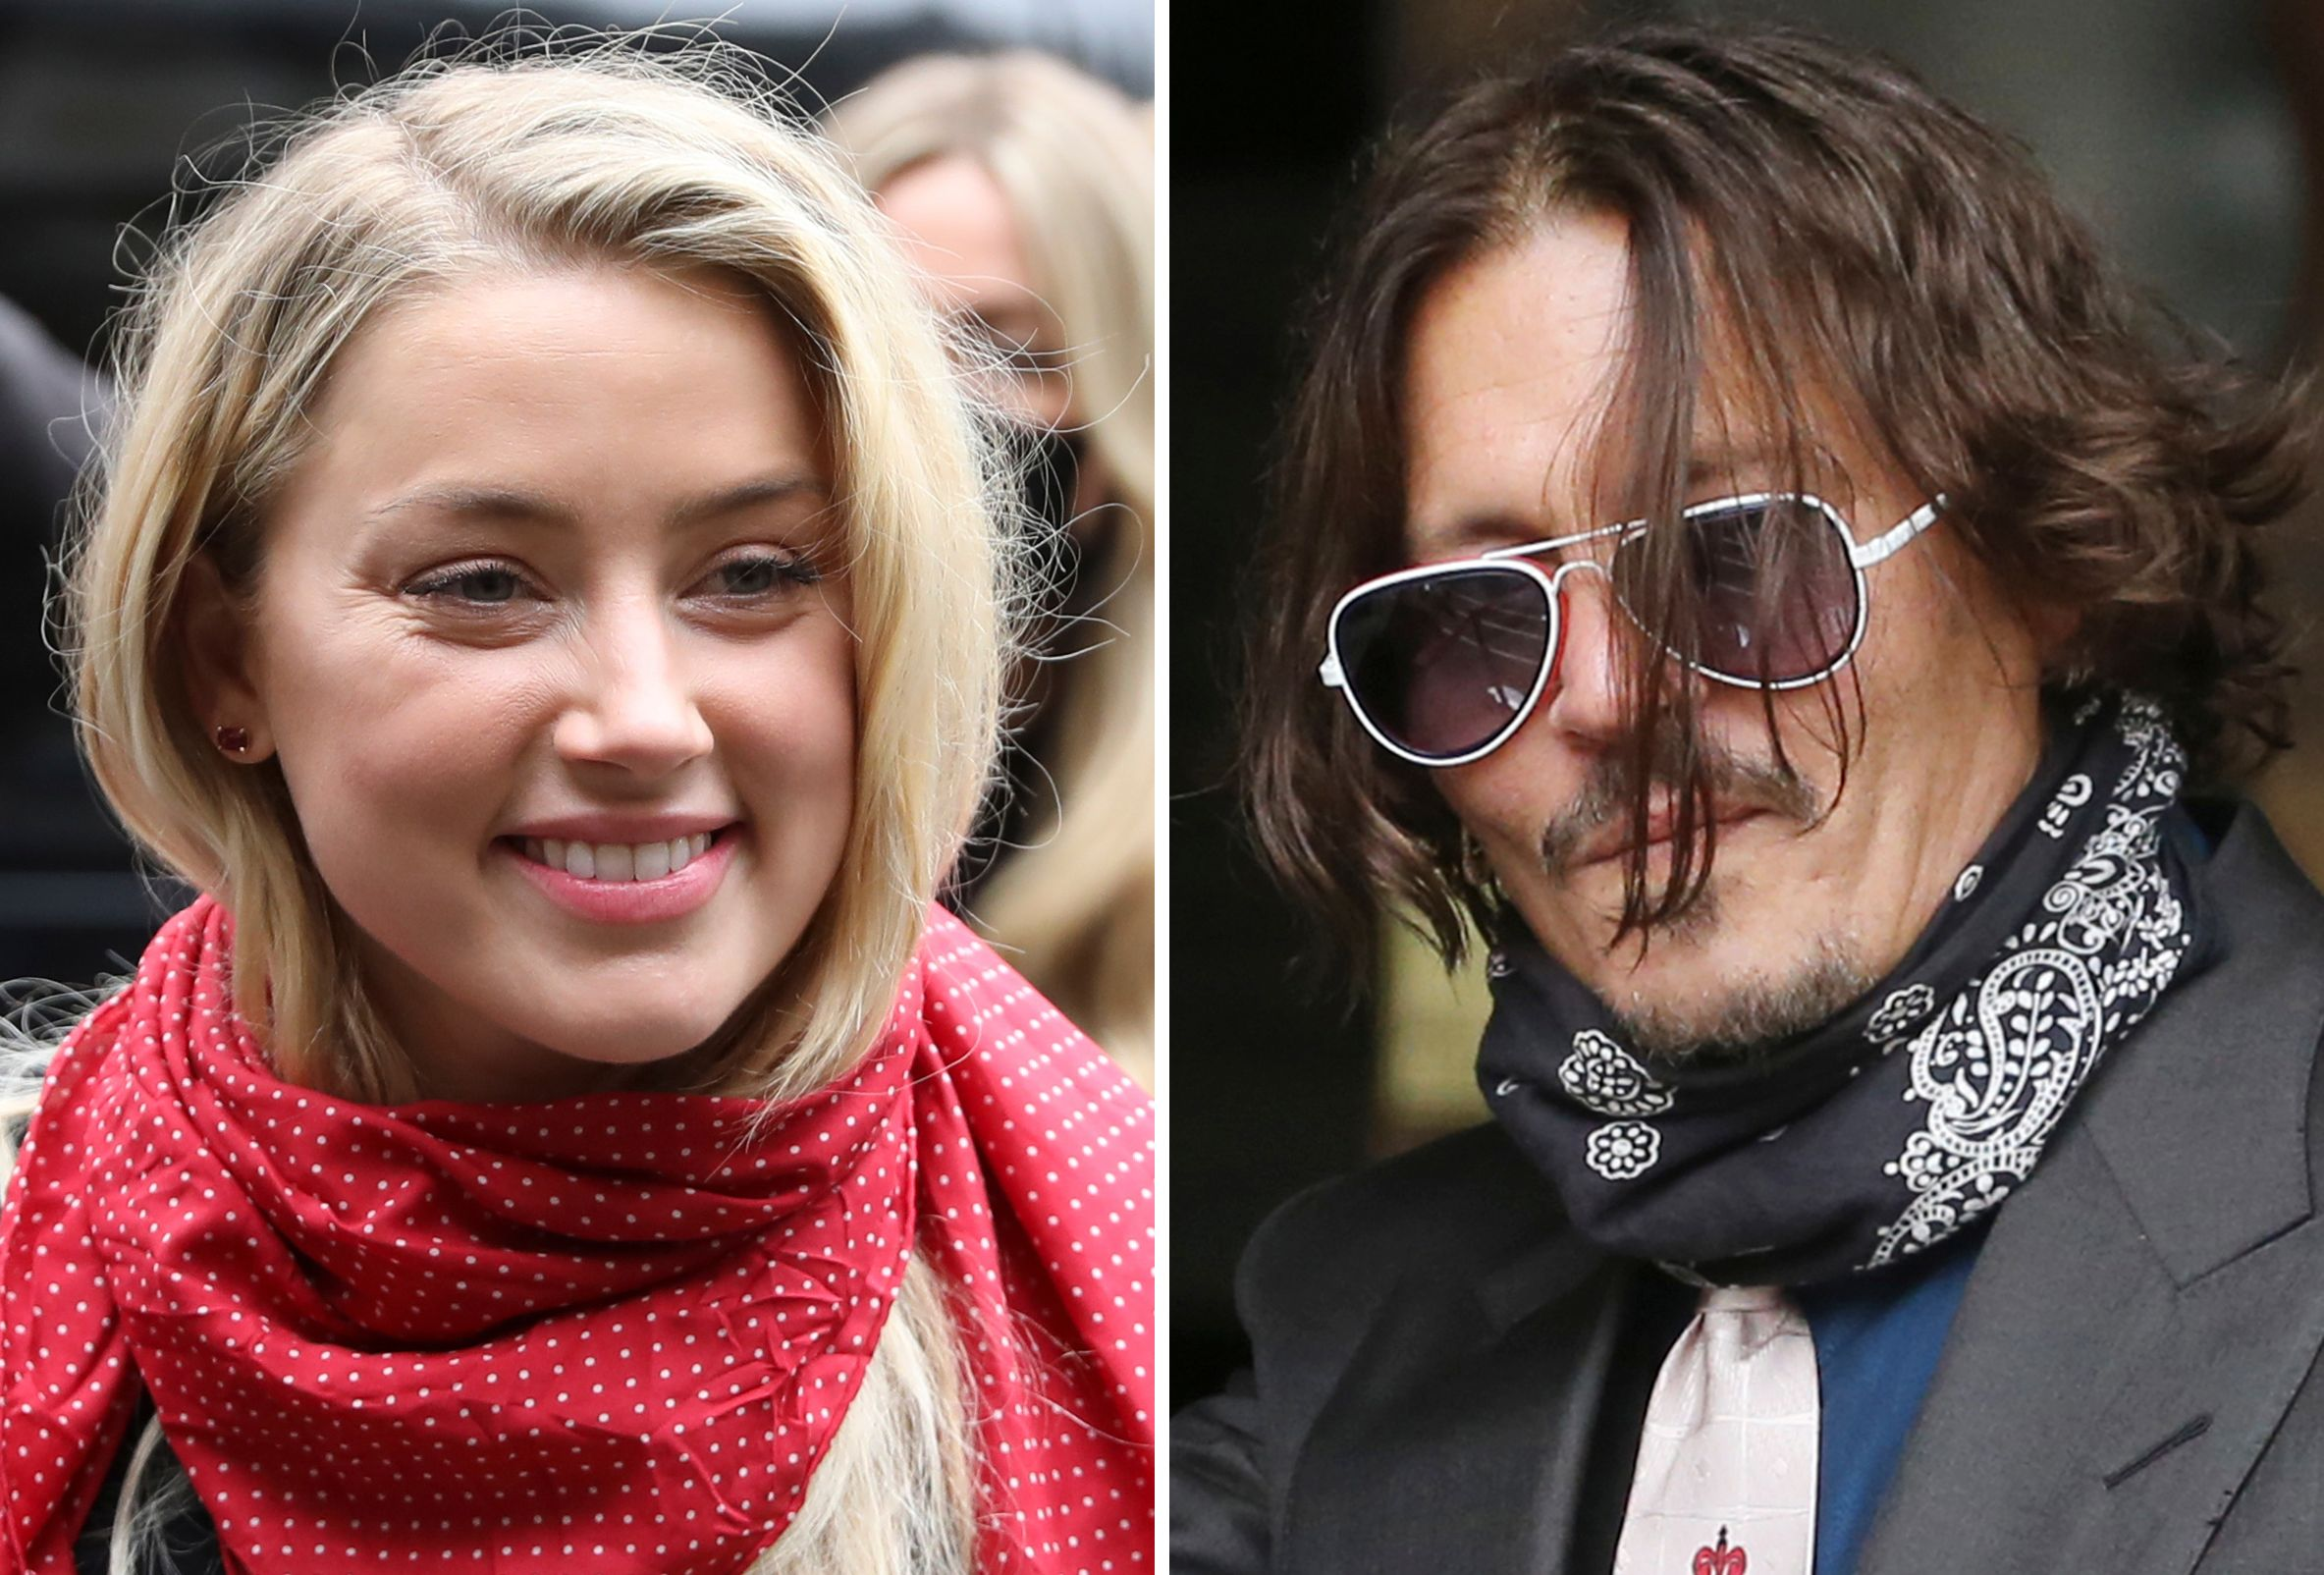 Amber Heard in London and Johnny Depp